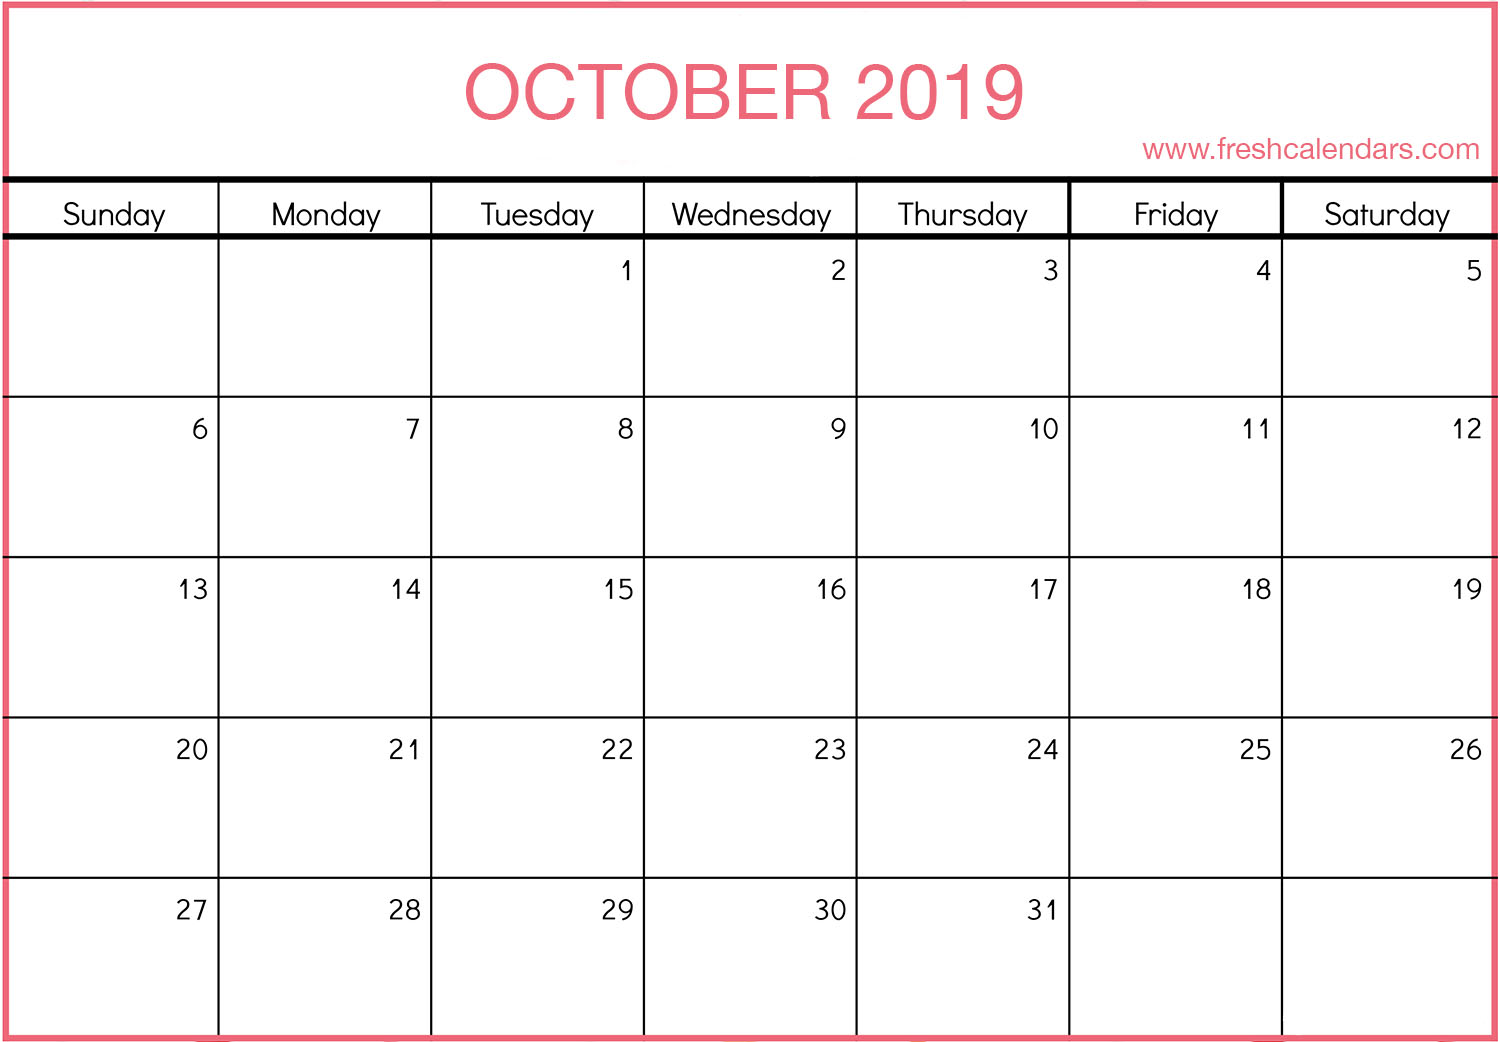 image relating to Printable Oct Calendar referred to as Oct 2019 Calendar Printable - Refreshing Calendars